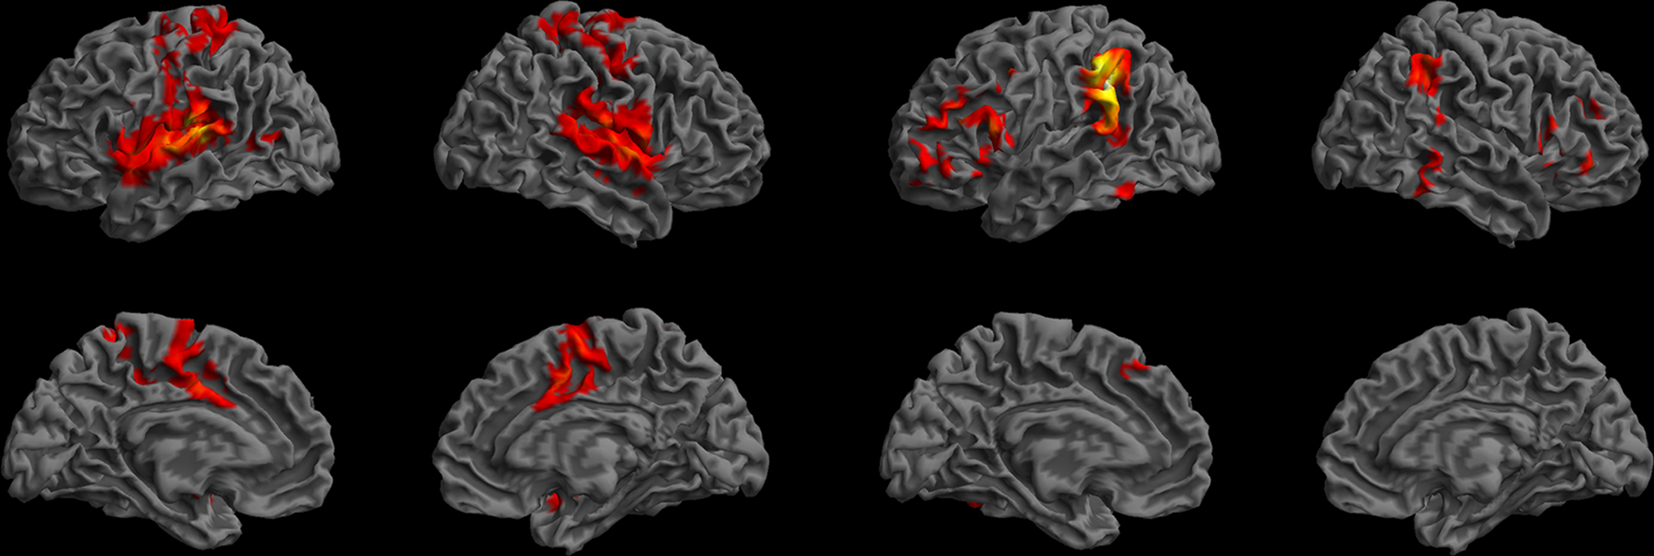 neural differences in native language comprehension Linguists regard speaking, signing, and language comprehension as primary faculties of language, ie, innate or inherent and biologically determined, whereas they regard reading and writing as secondary abilities.